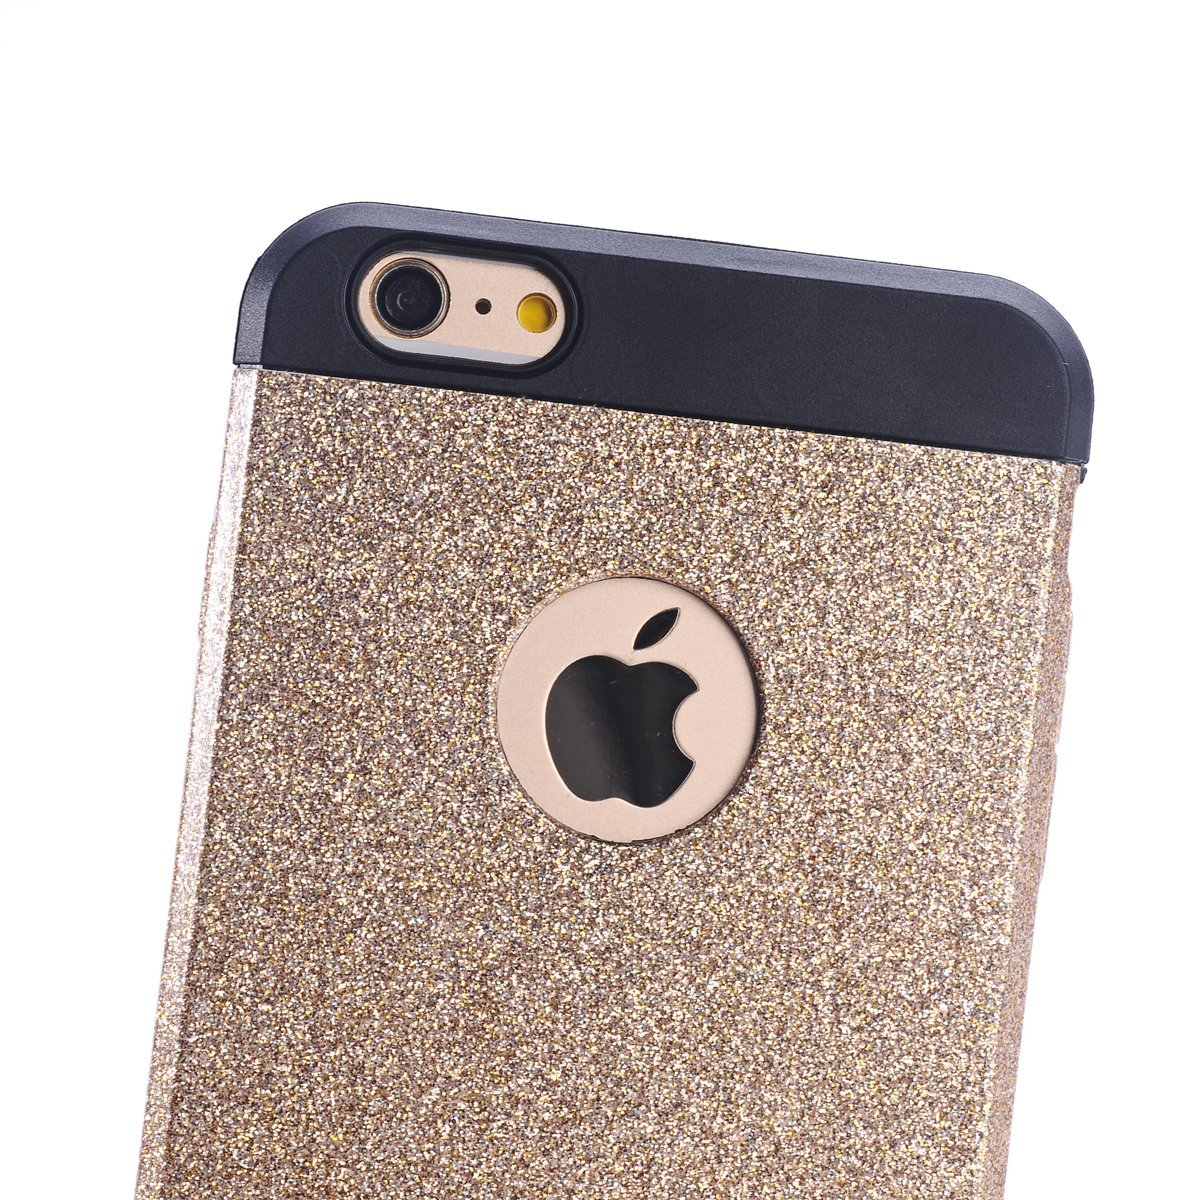 iPhone 6 Case, YAKAON High Quality Luxury Hybrid TPU Shiny Bling Sparkling with Crystal Rhinestone Cover Case for iPhone 6(4.7inch) with Multi-color gold 3